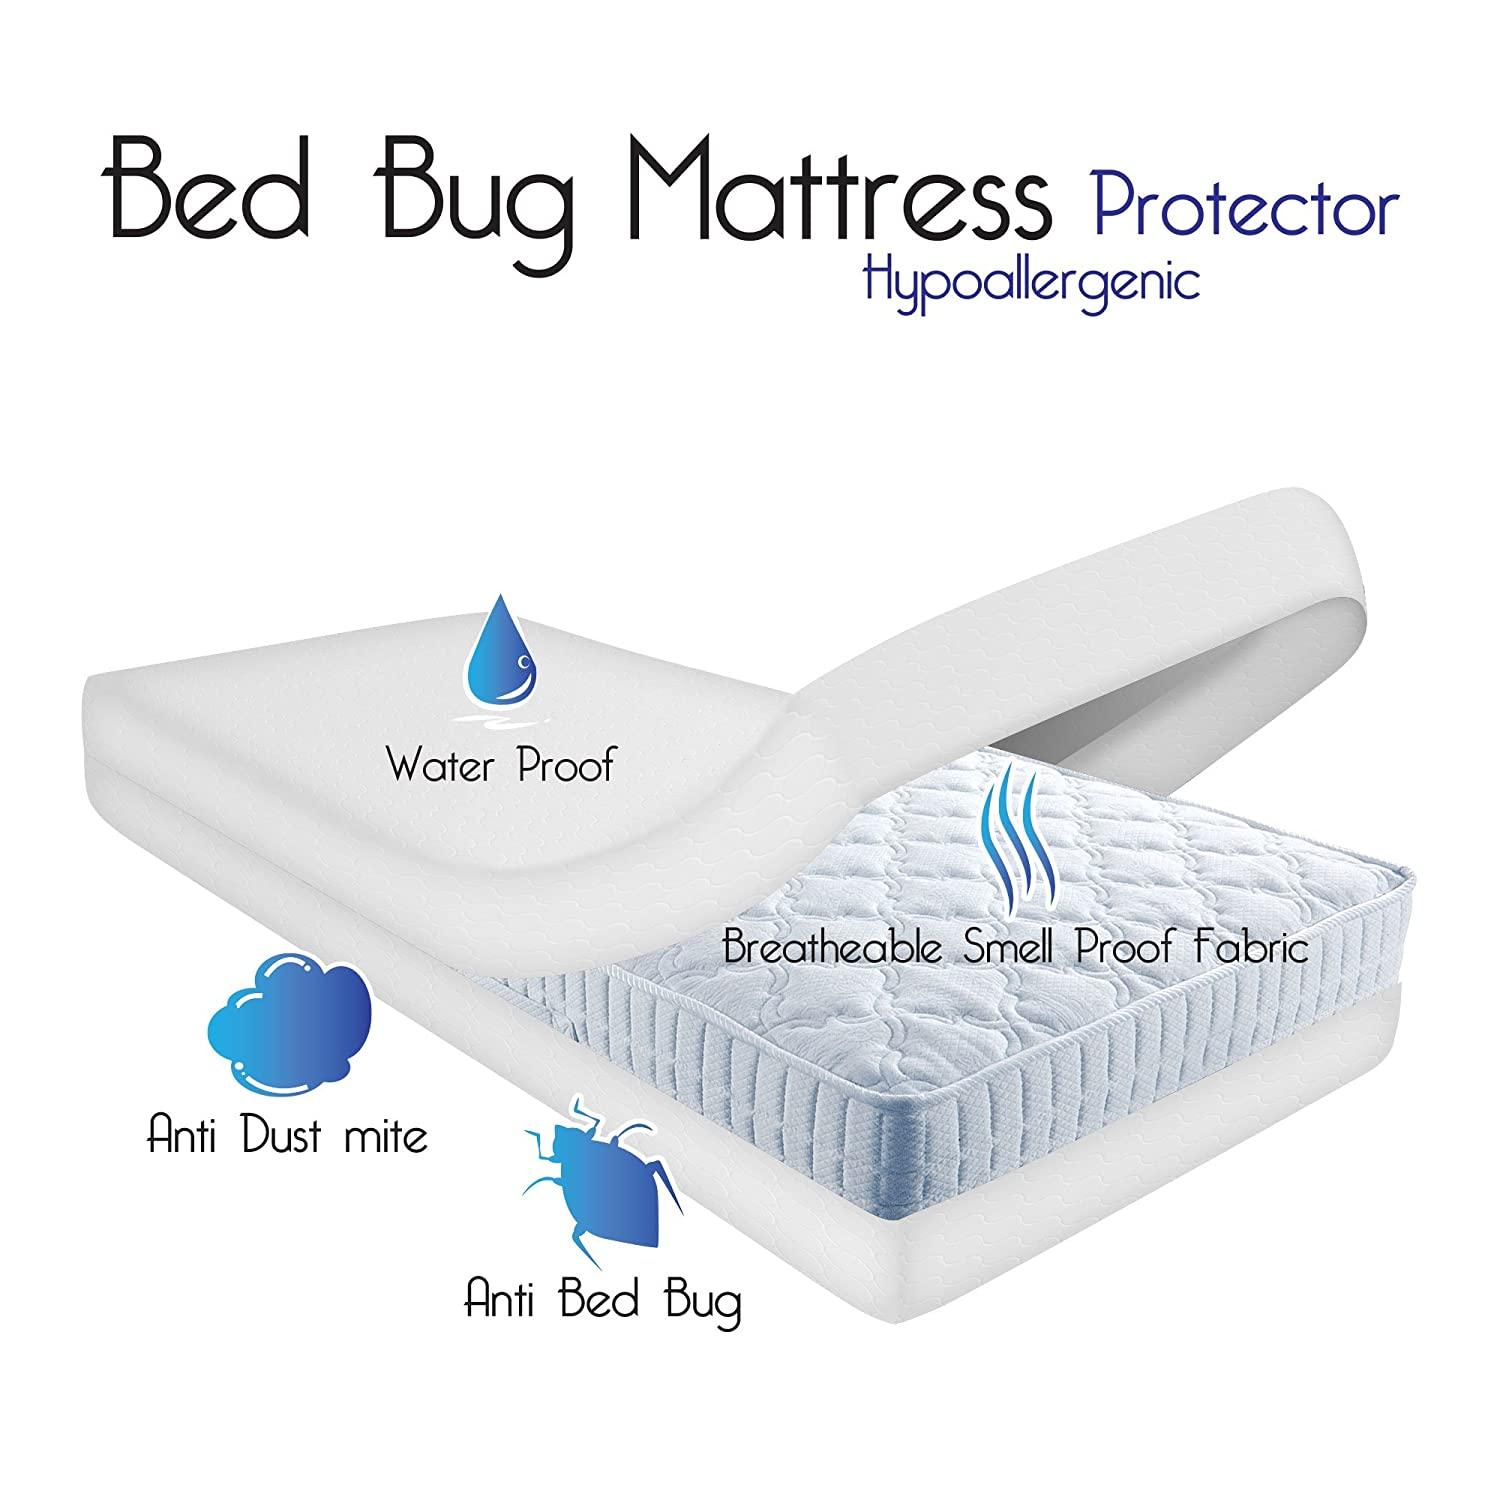 bath and best lovely amp tags of sheets duvet mattress protector covers what beyond are awesome bed the